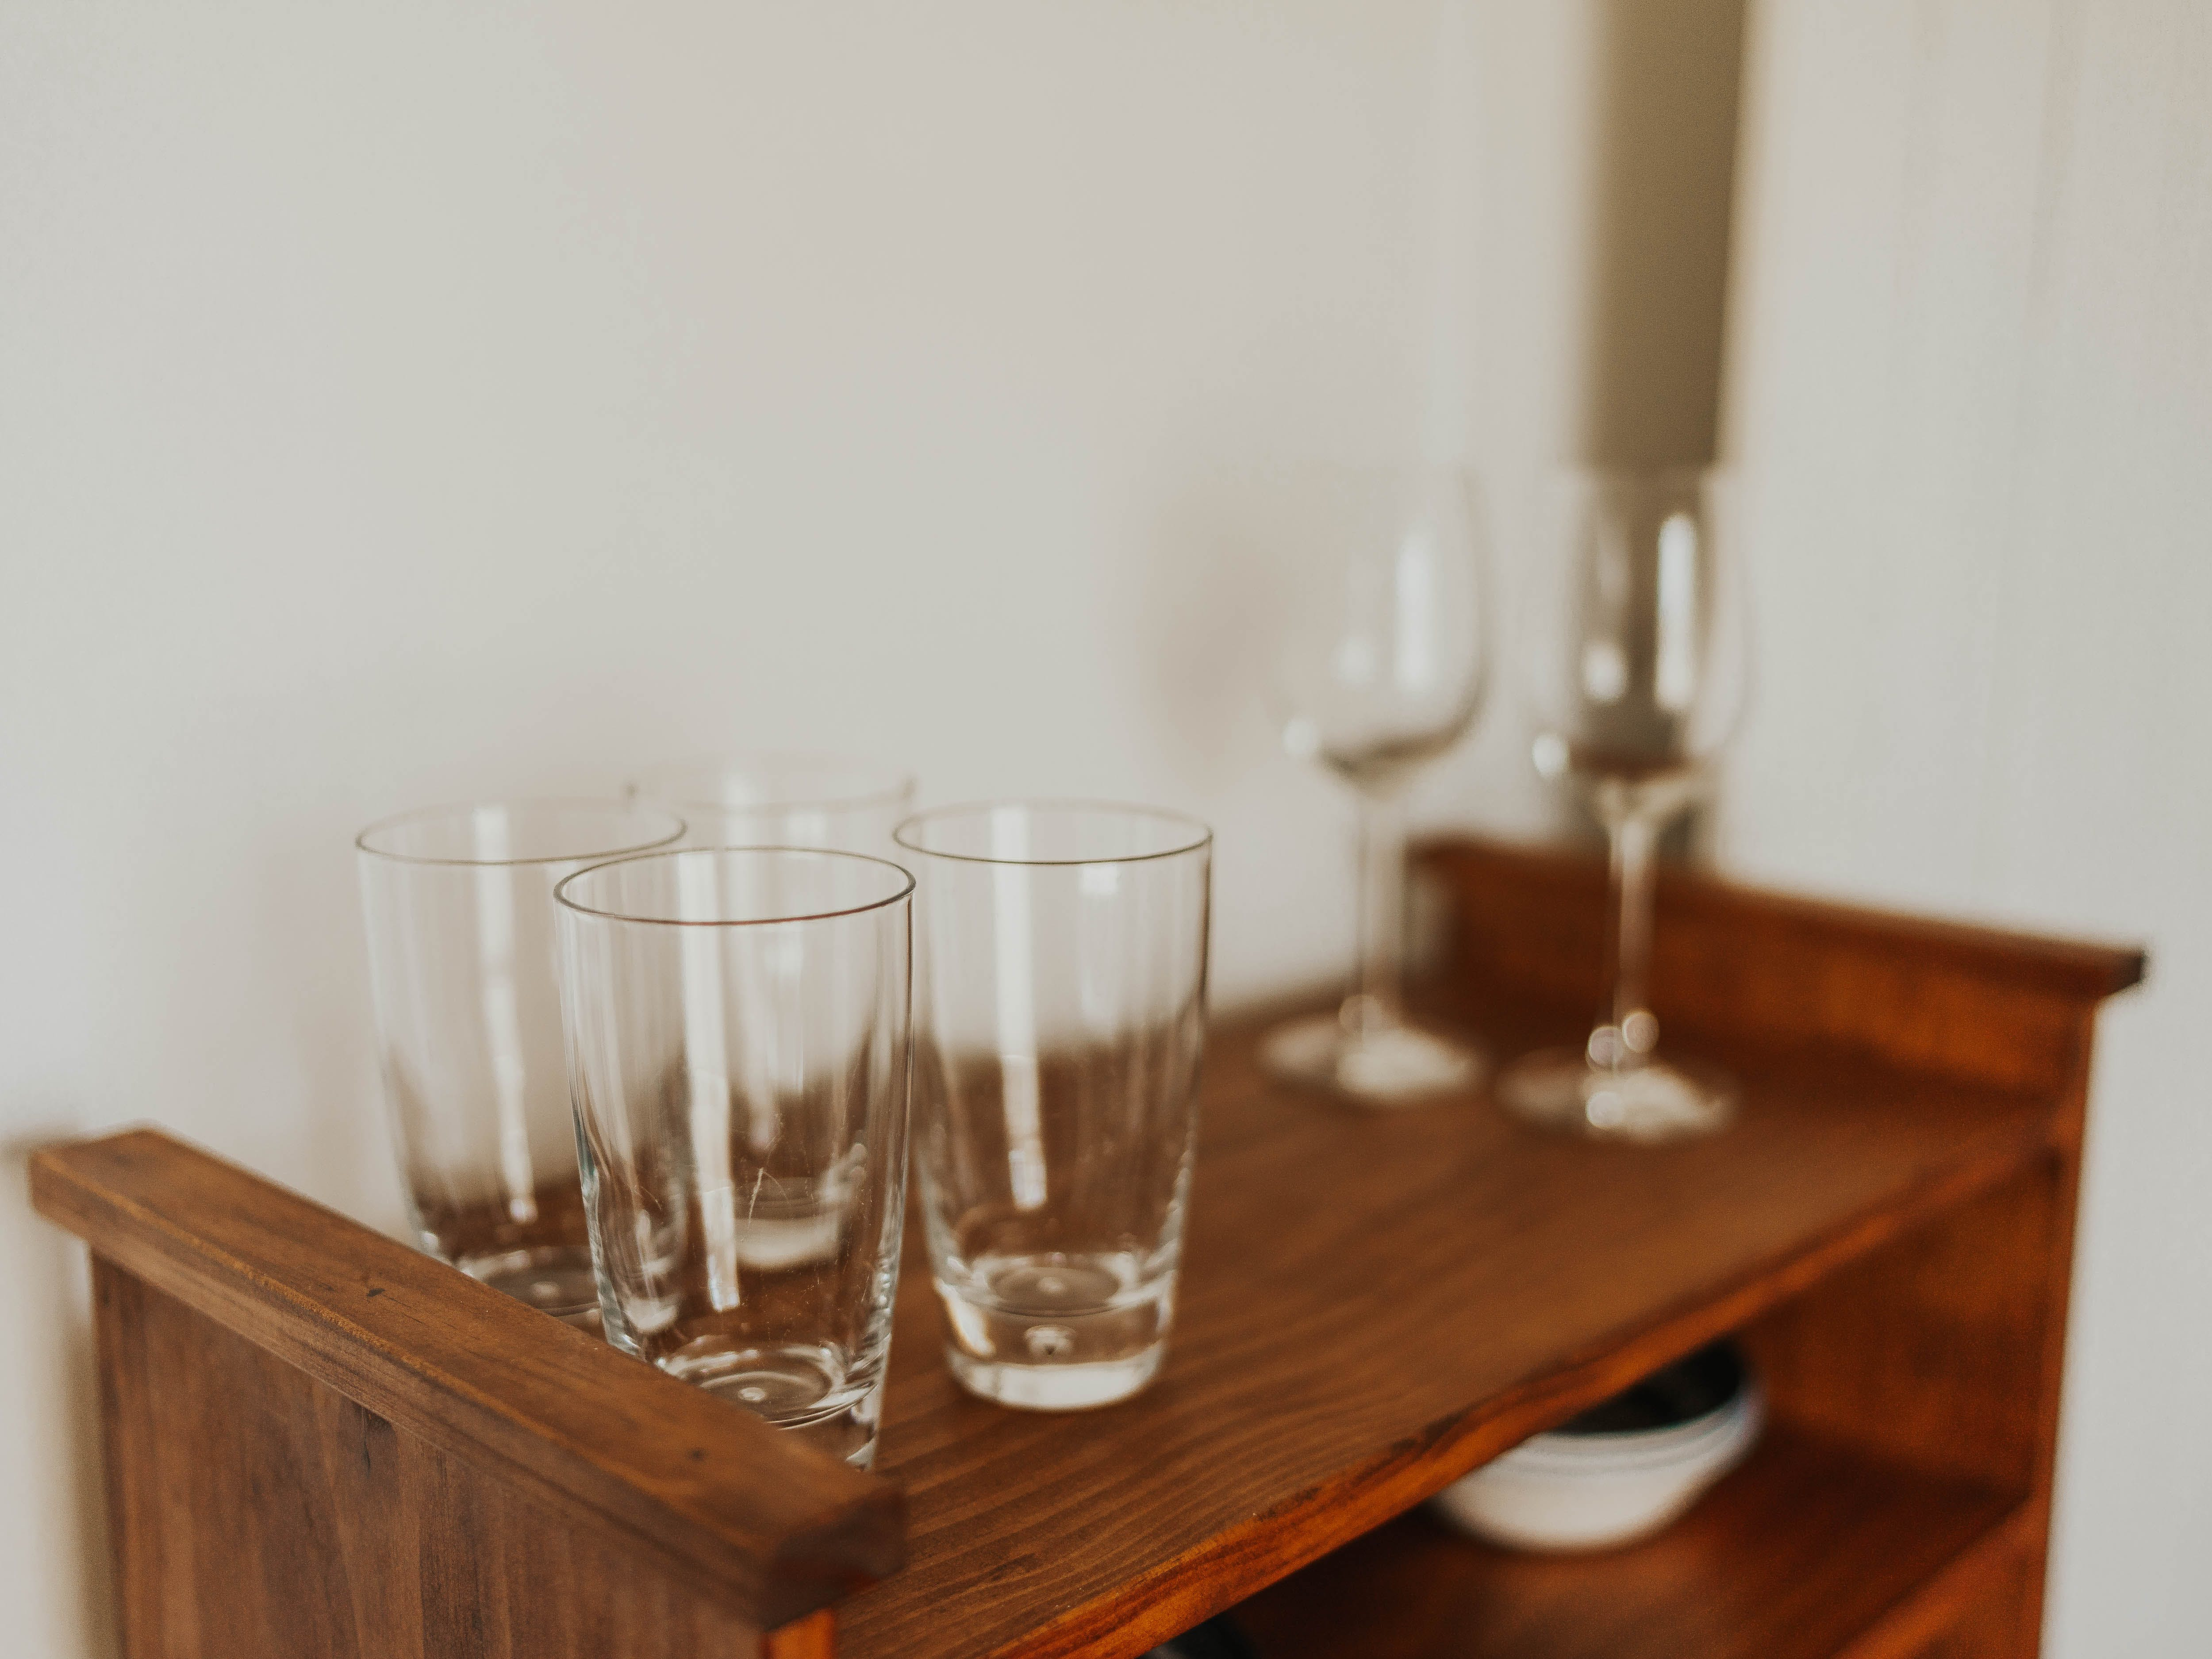 Water and wine glasses in fully equipped Turoa suite kitchen